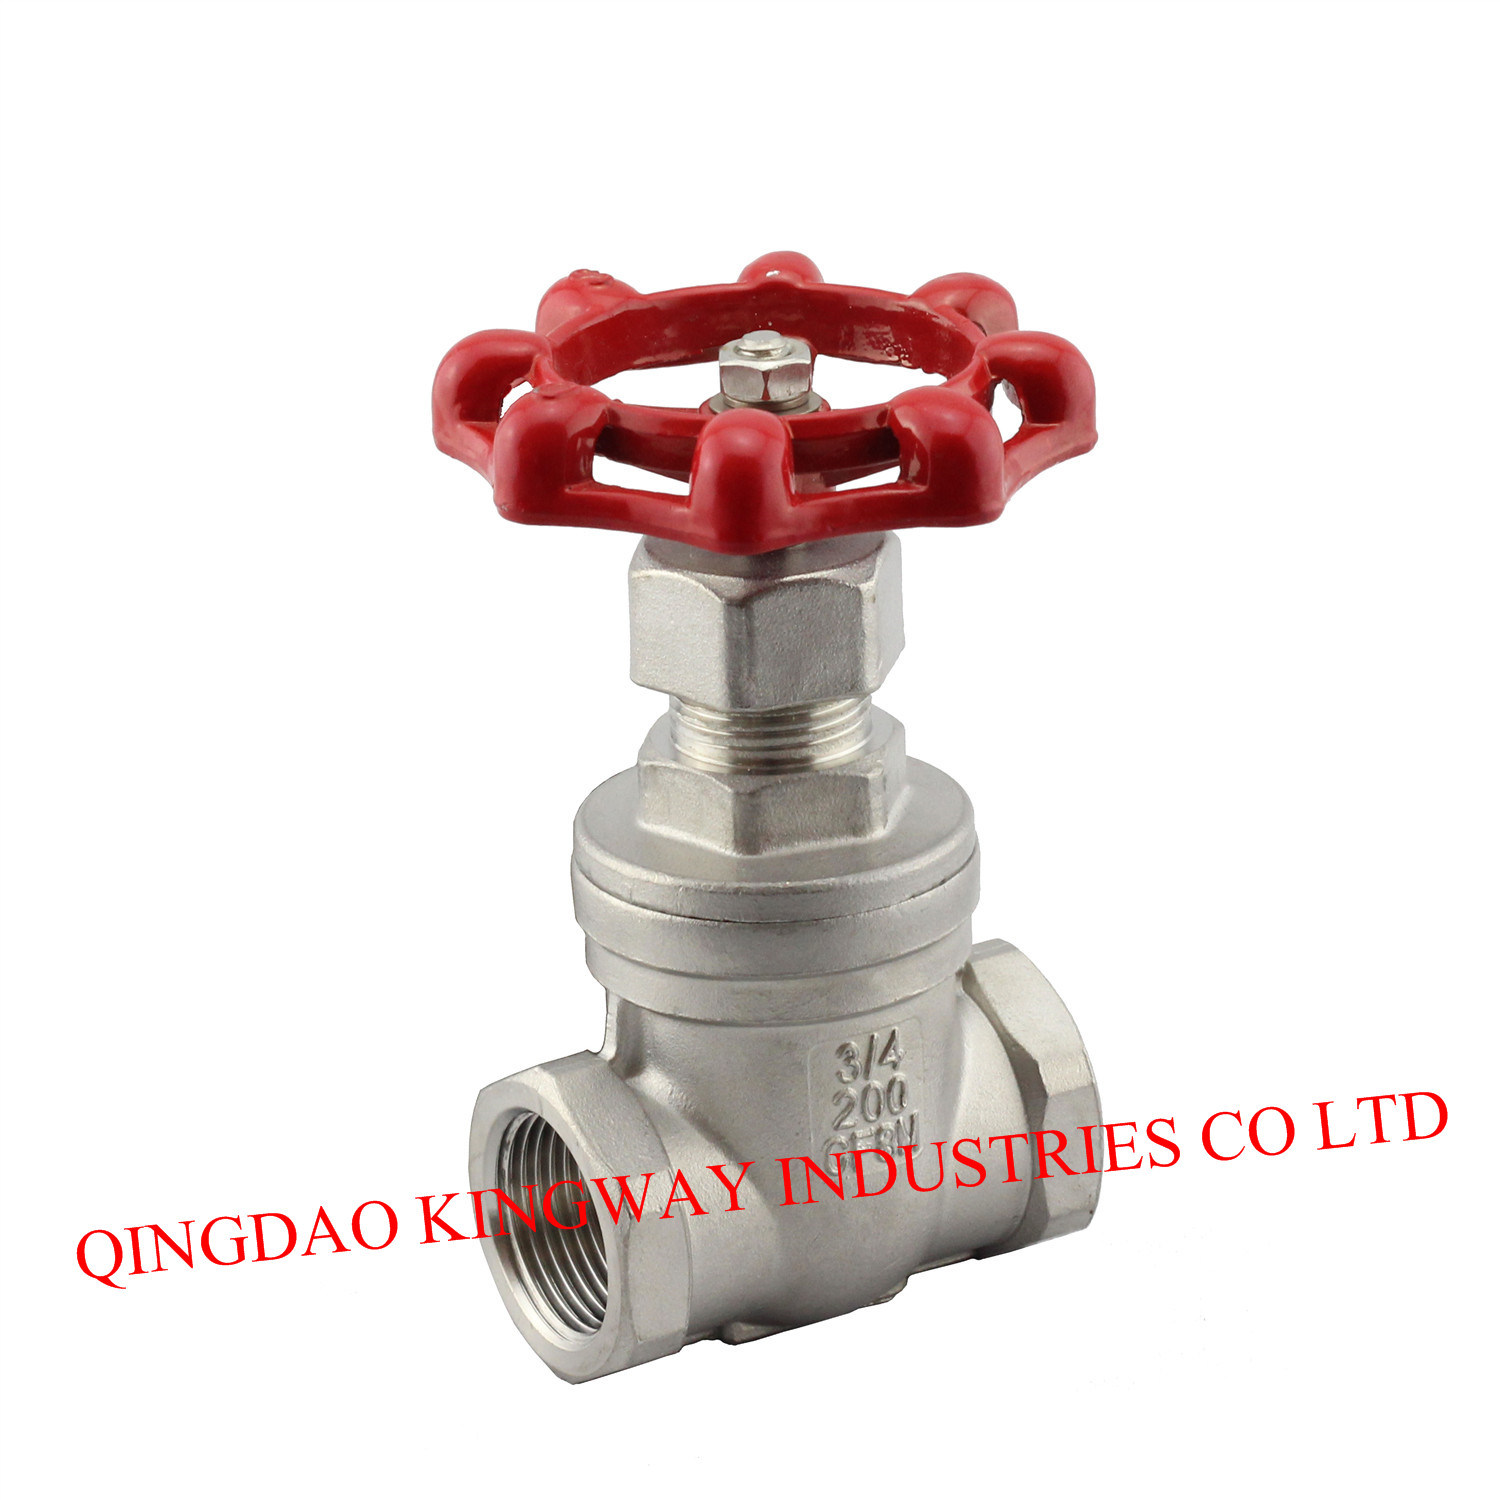 Stainless Steel Gate Valve with 200psi/Pn16